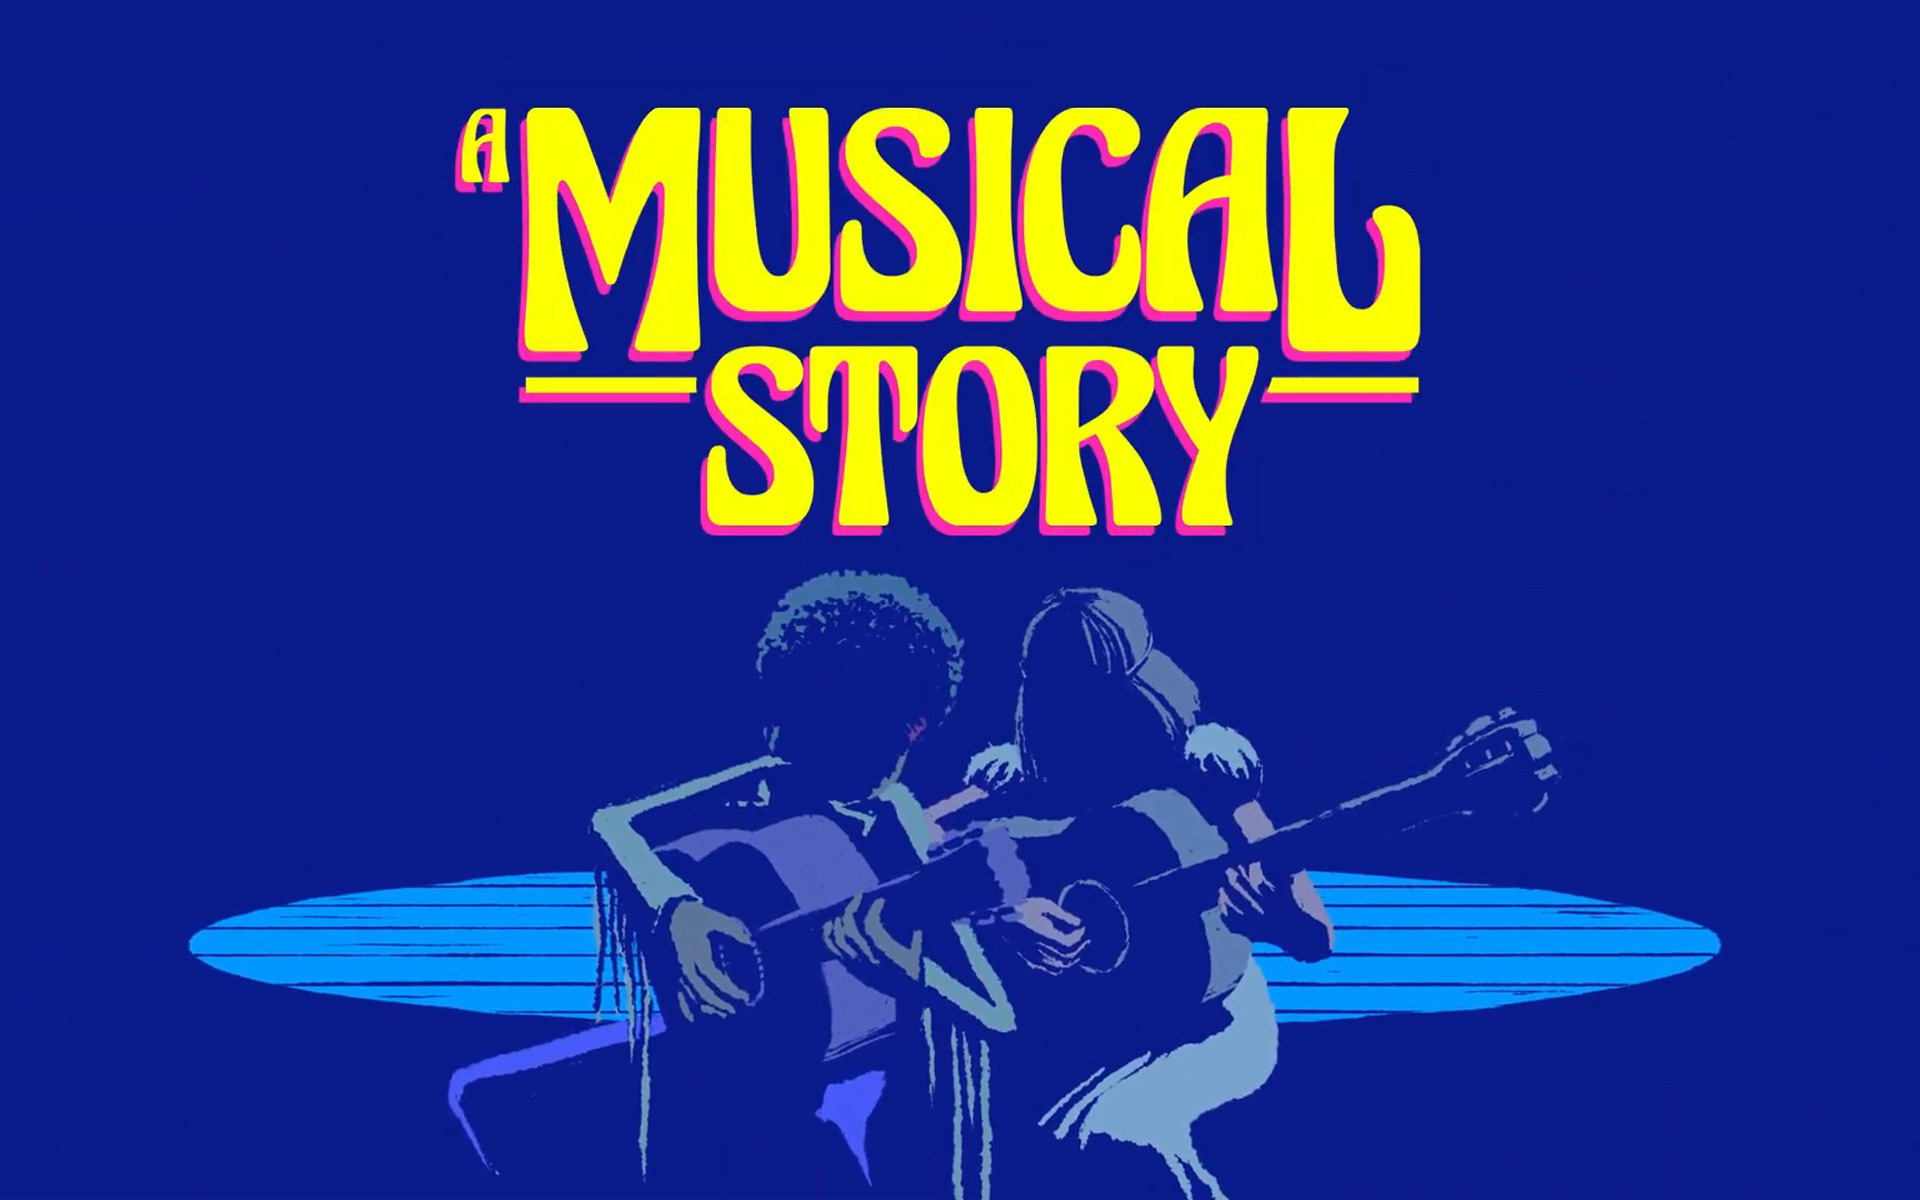 Free A Musical Story Wallpaper in 1920x1200